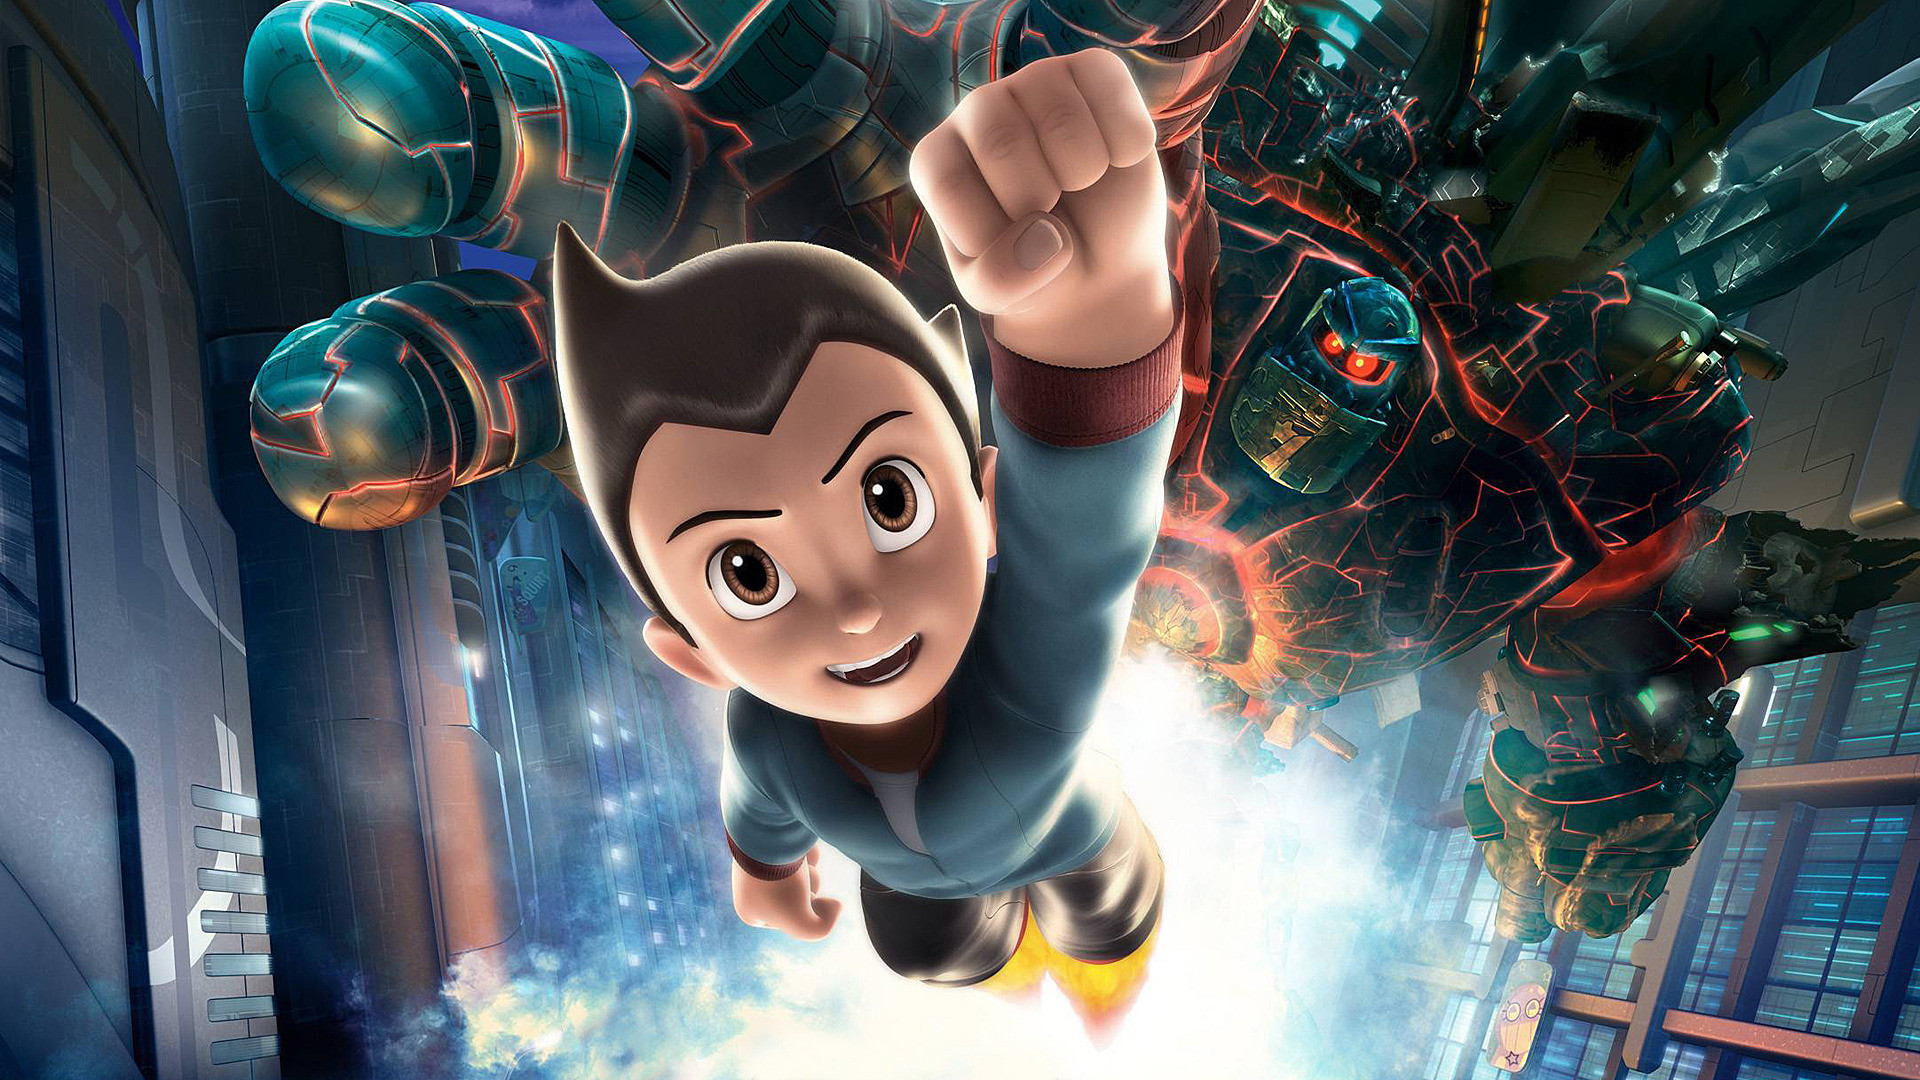 astro boy wallpaper hd 53826